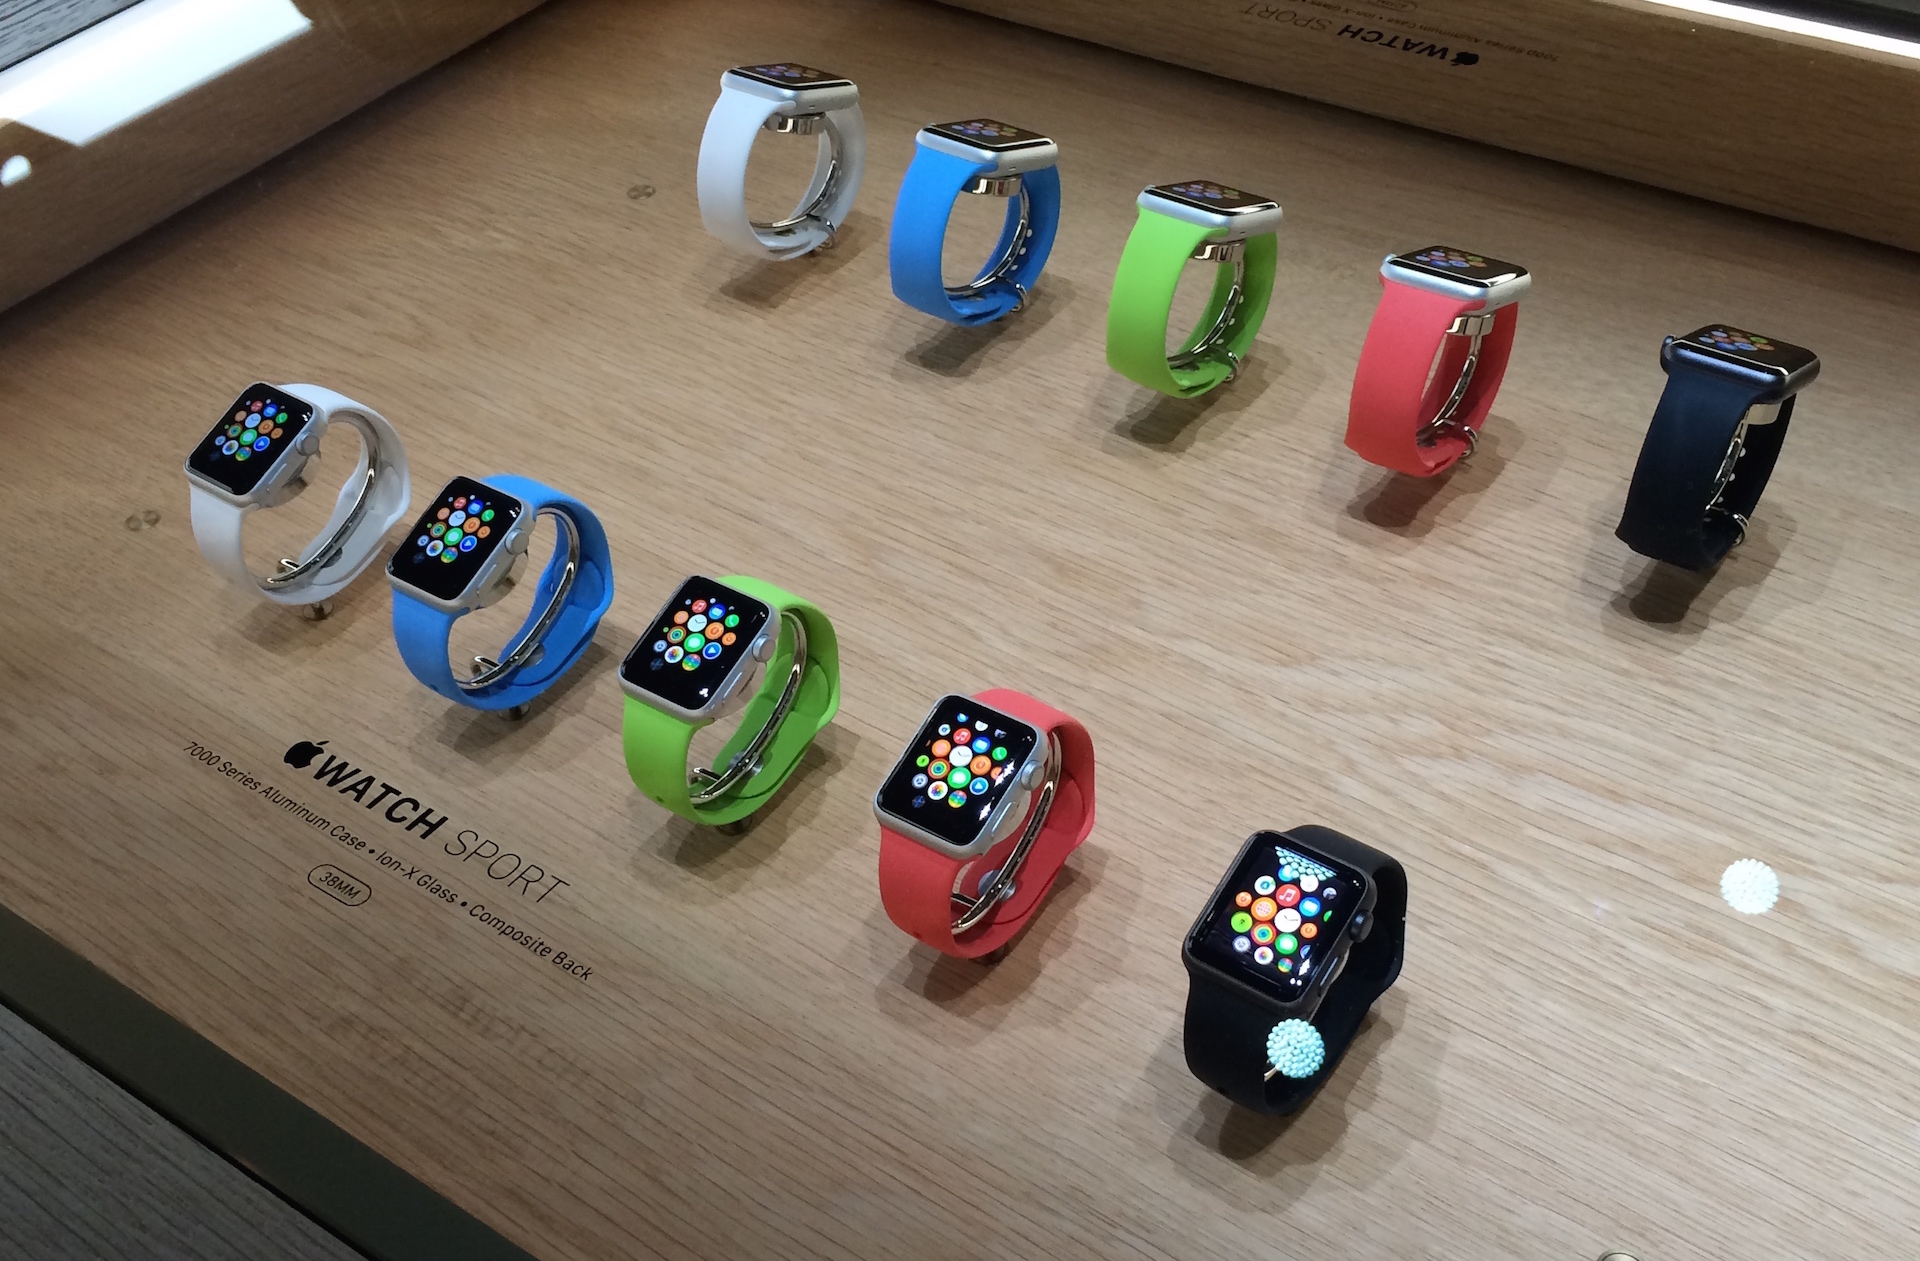 What Can Teach Us The 1.0 Versions of The Products Apple about Apple Watch